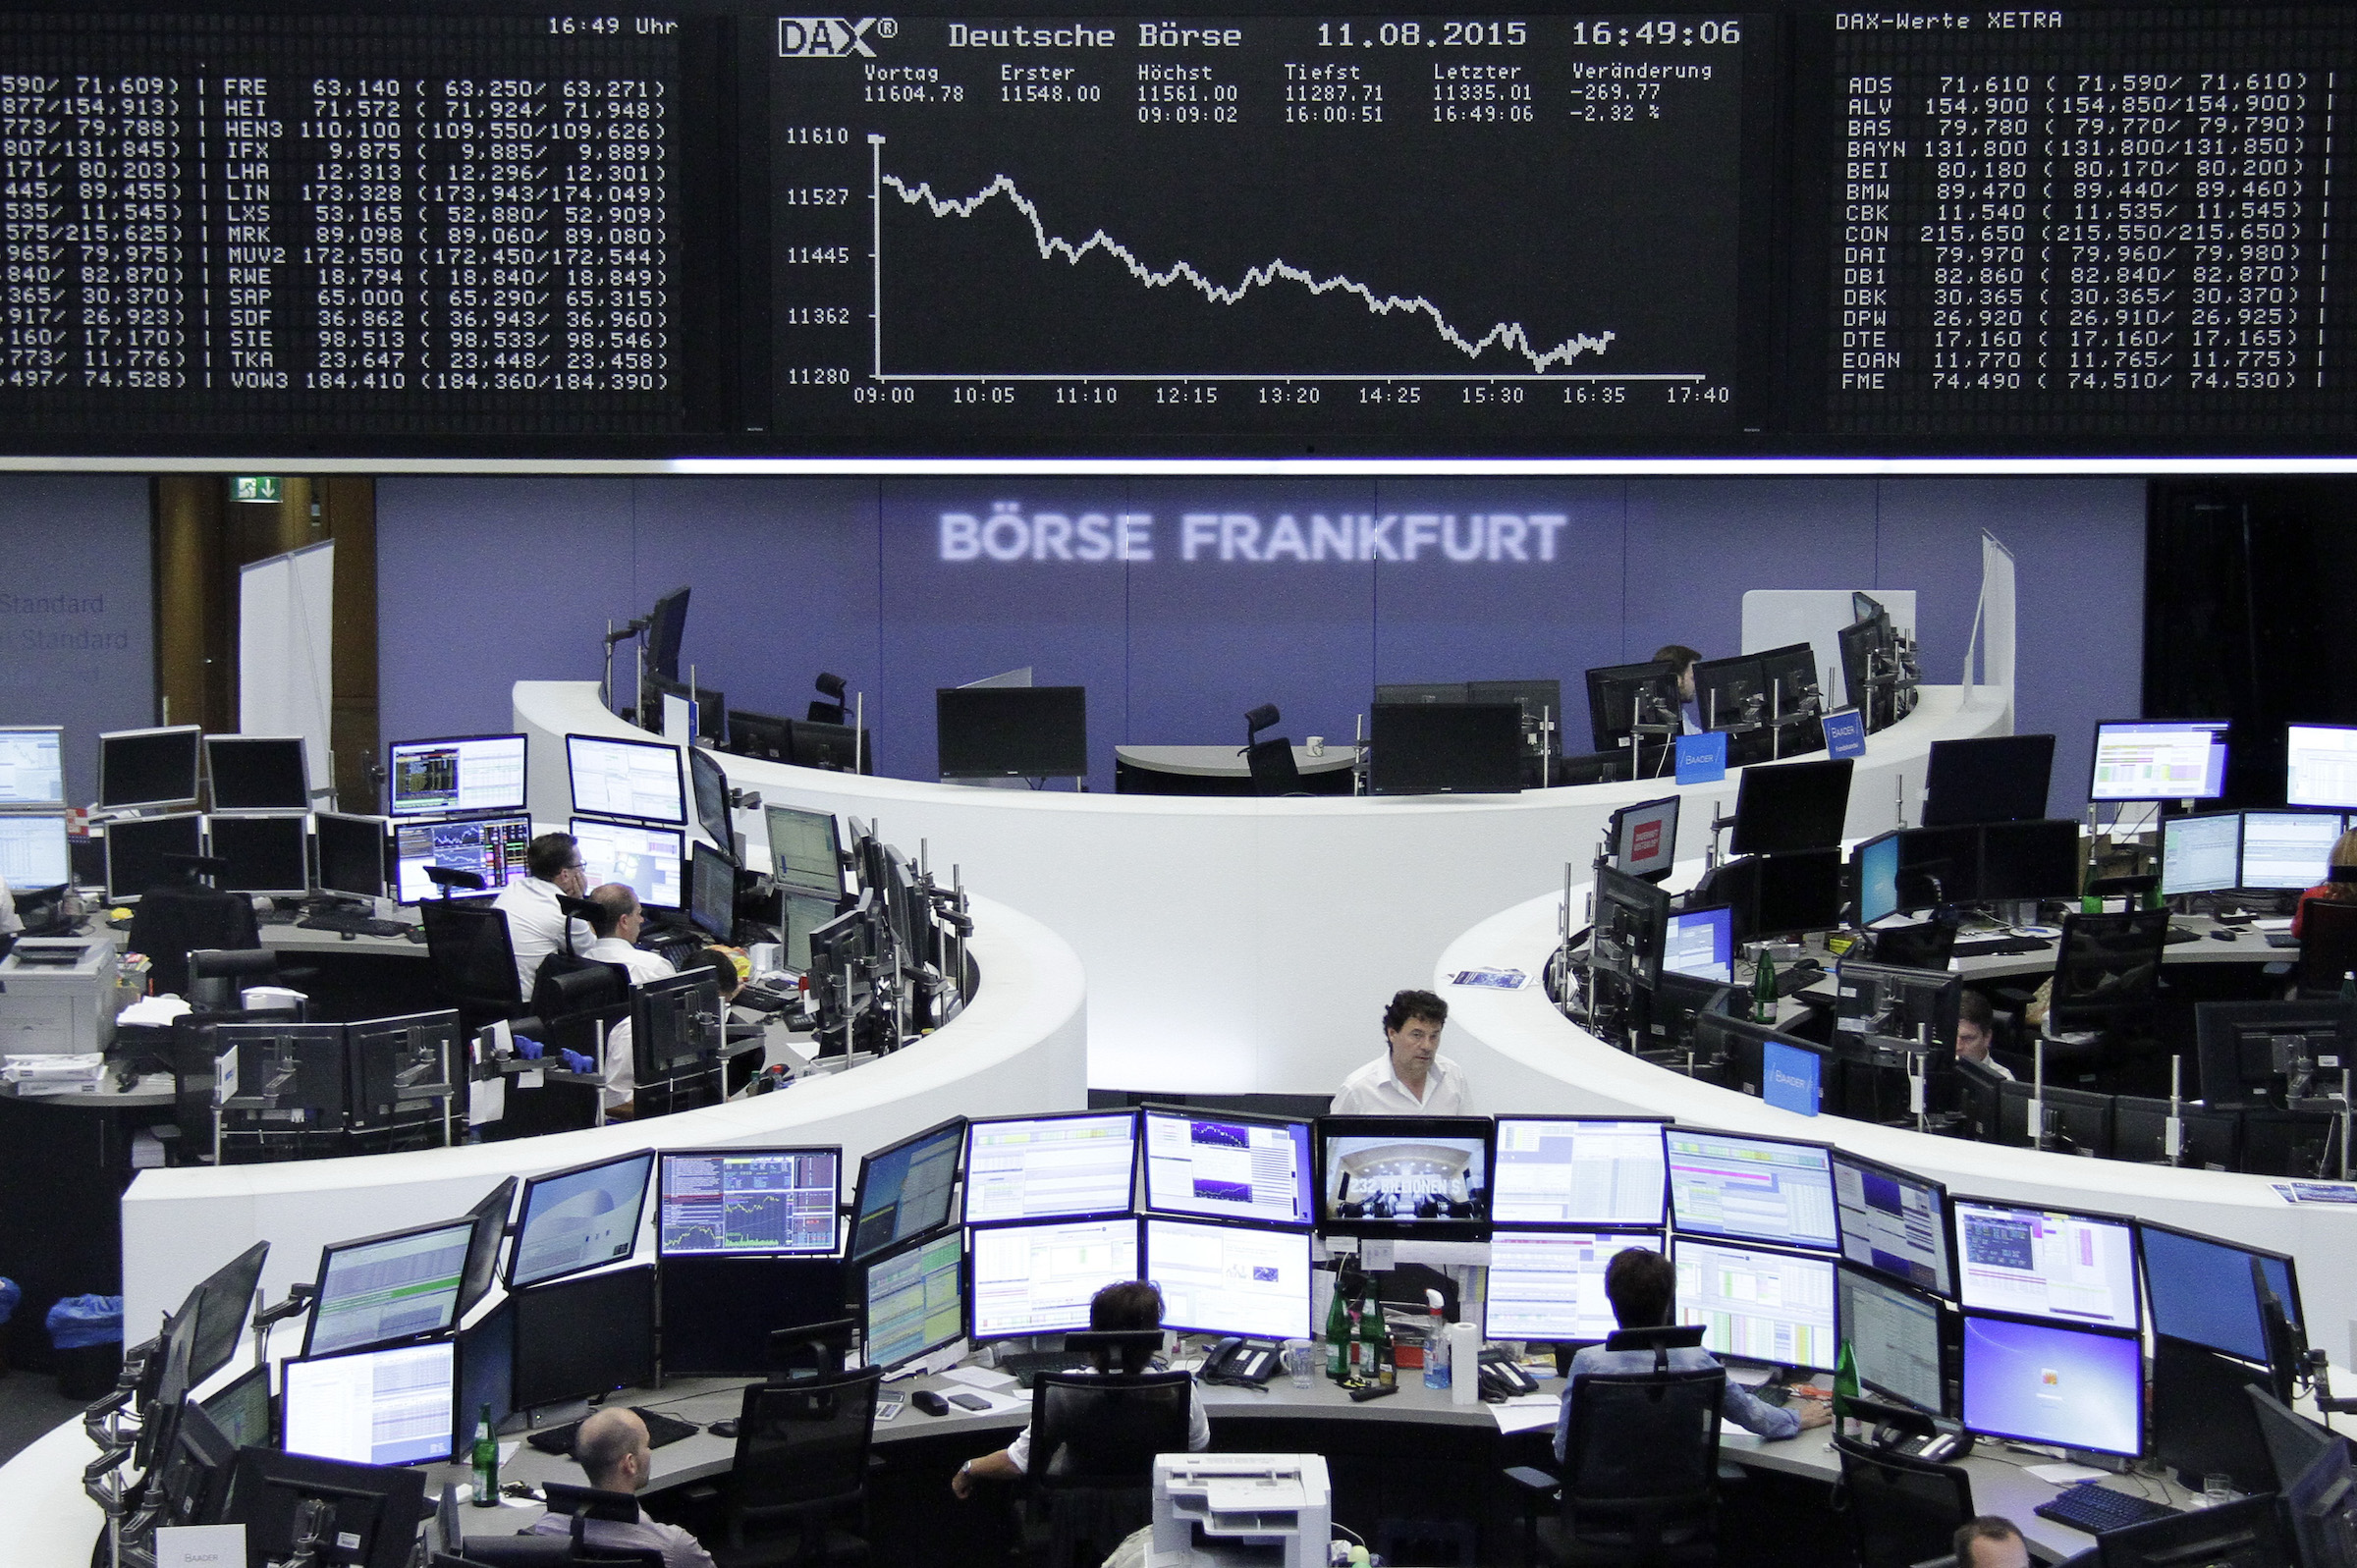 Traders are pictured at their desks in front of the DAX board at the stock exchange in Frankfurt, Germany August 11, 2015. European shares retreated on Tuesday, with carmakers and luxury goods stocks among the worst performers after China devalued its yuan currency.